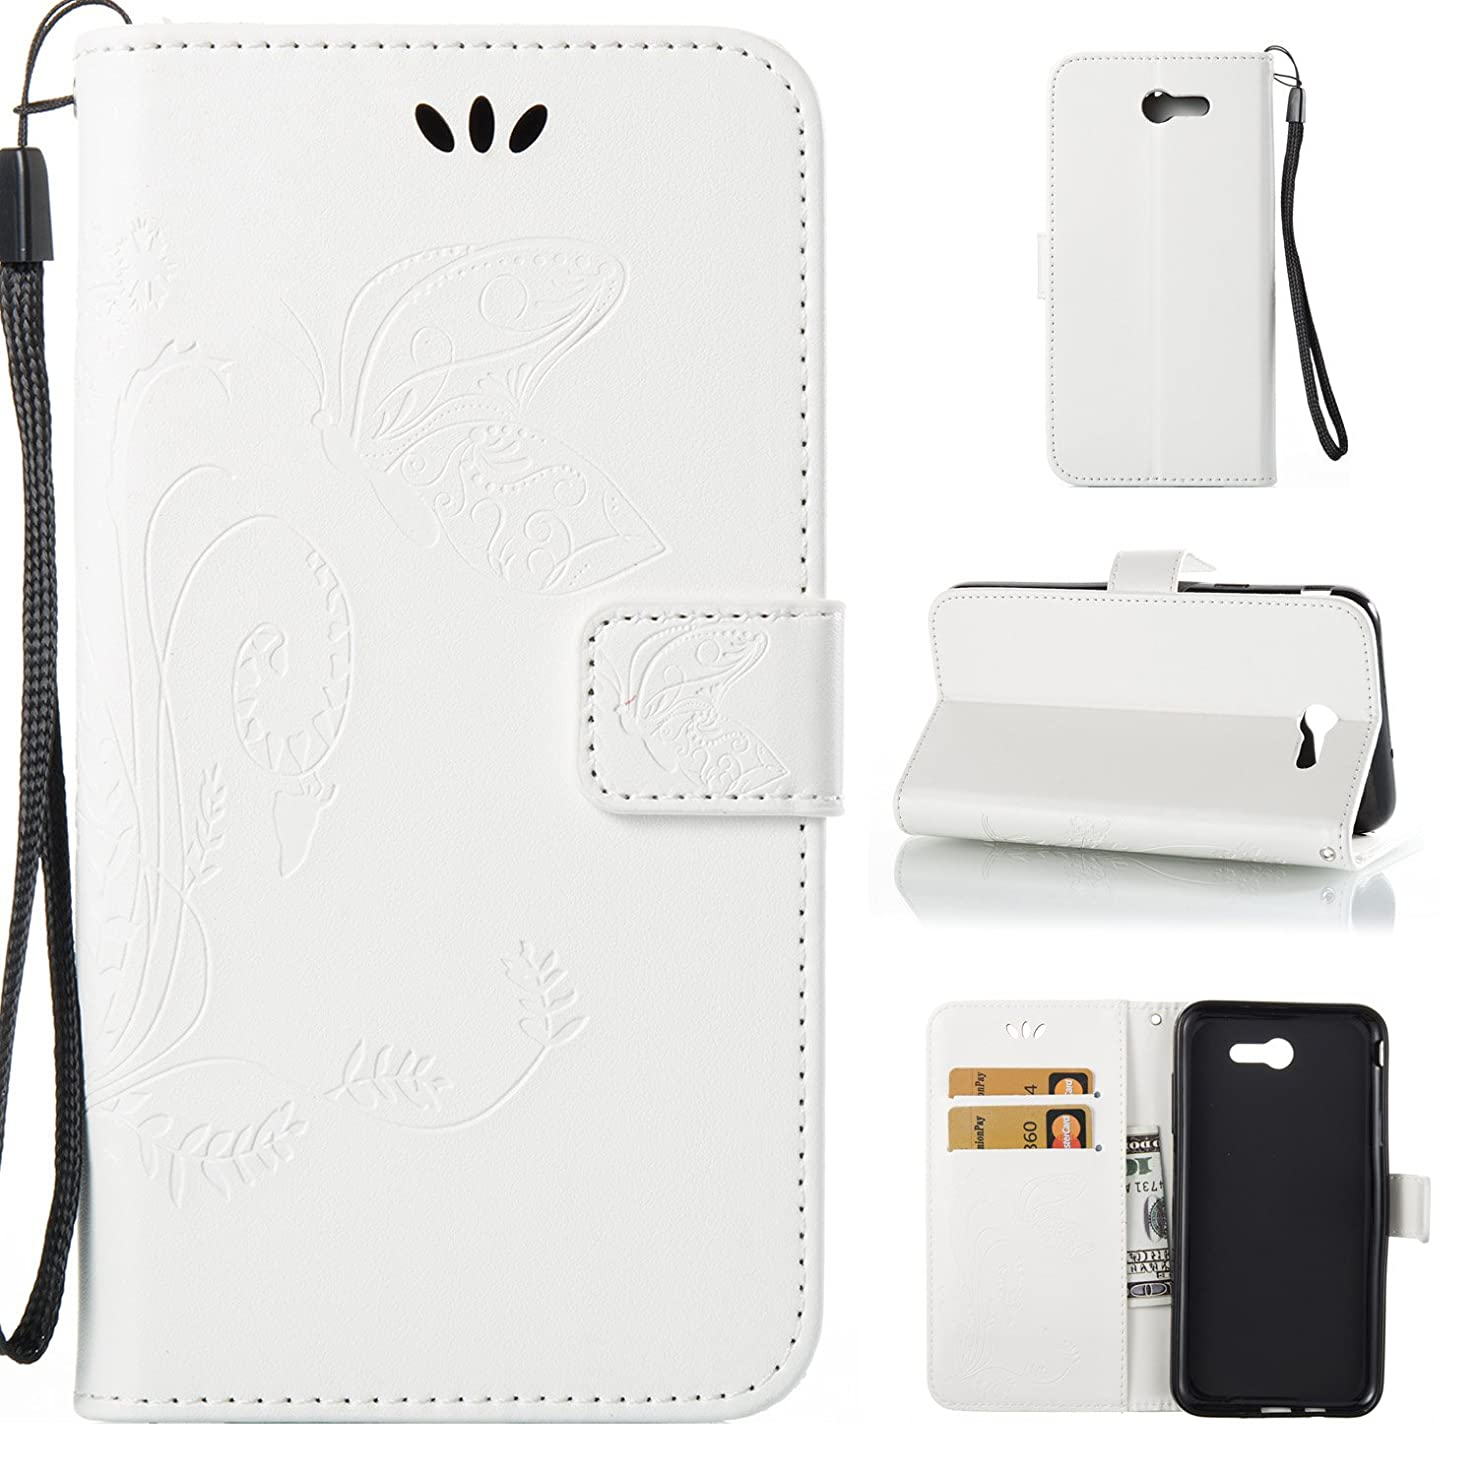 Galaxy J7 V,Galaxy Halo,J7 Perx,Galaxy J7 Sky Pro,J7 2017,DAMONDY Embossed Butterfly PU Leather Magnetic Flip Cover Card Holders & Hand Strap Wallet Purse Case for Samsung Galaxy J7 2017-White